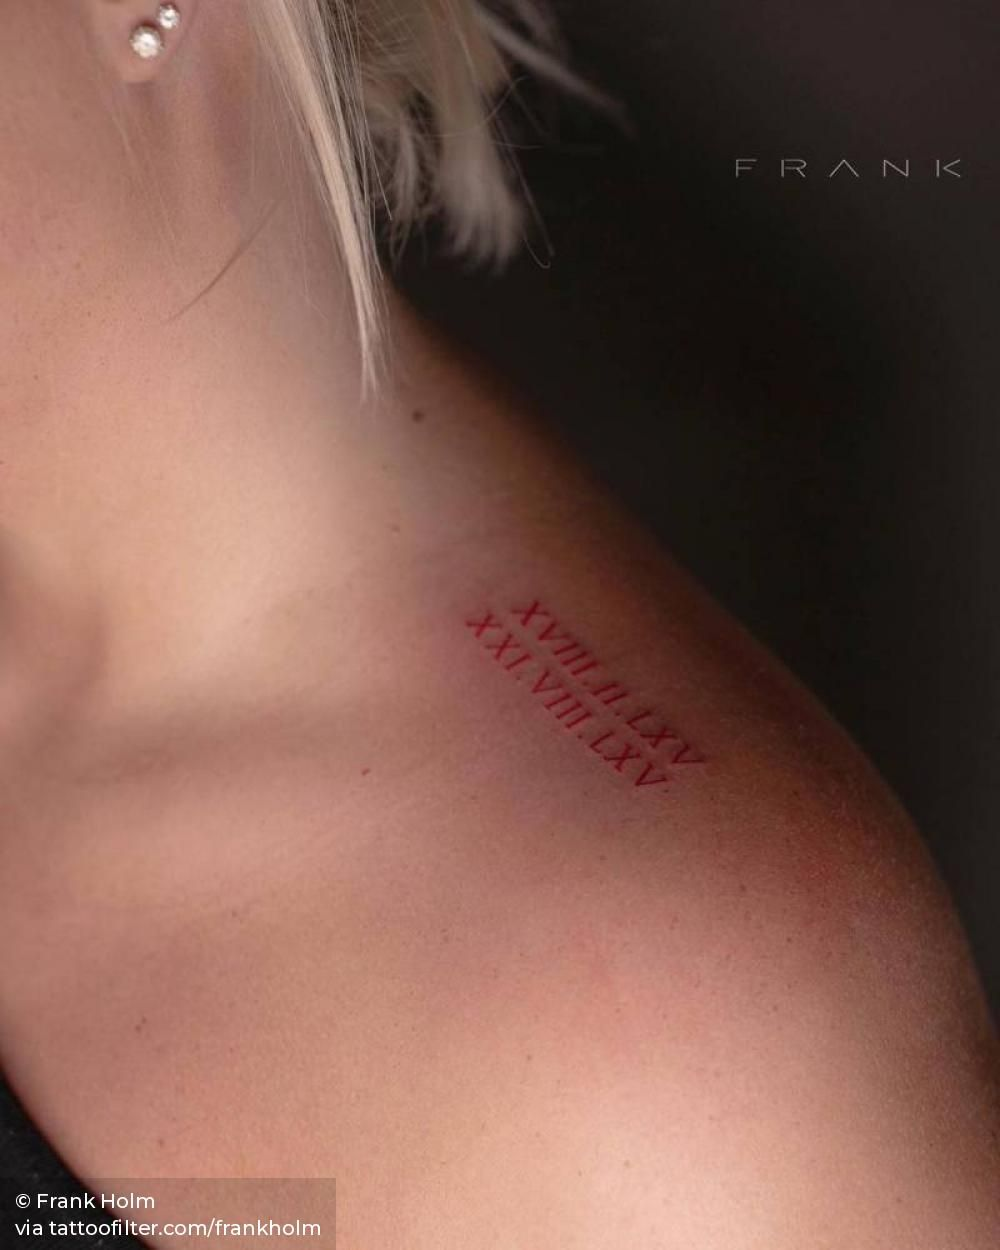 Date In Roman Numerals In Red In 2020 Red Tattoos Red Ink Tattoos Small Shoulder Tattoos